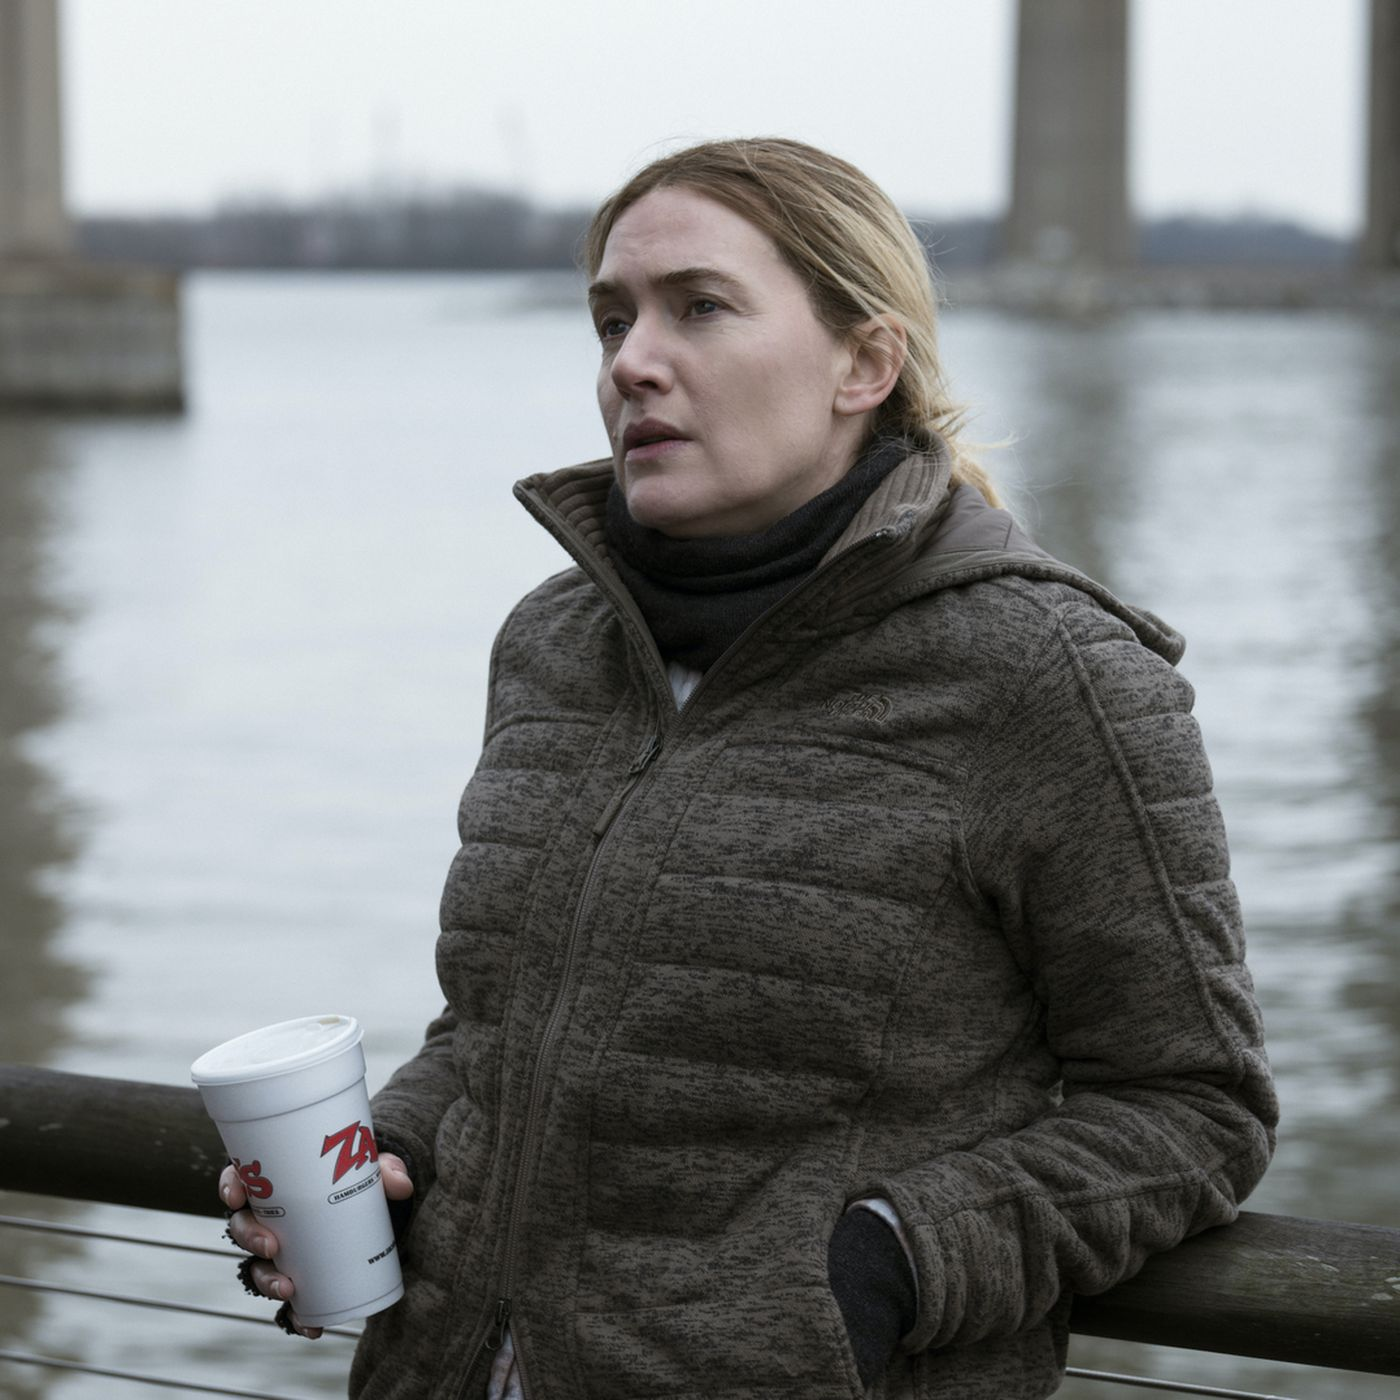 omcidio a easttown kate winslet 2021